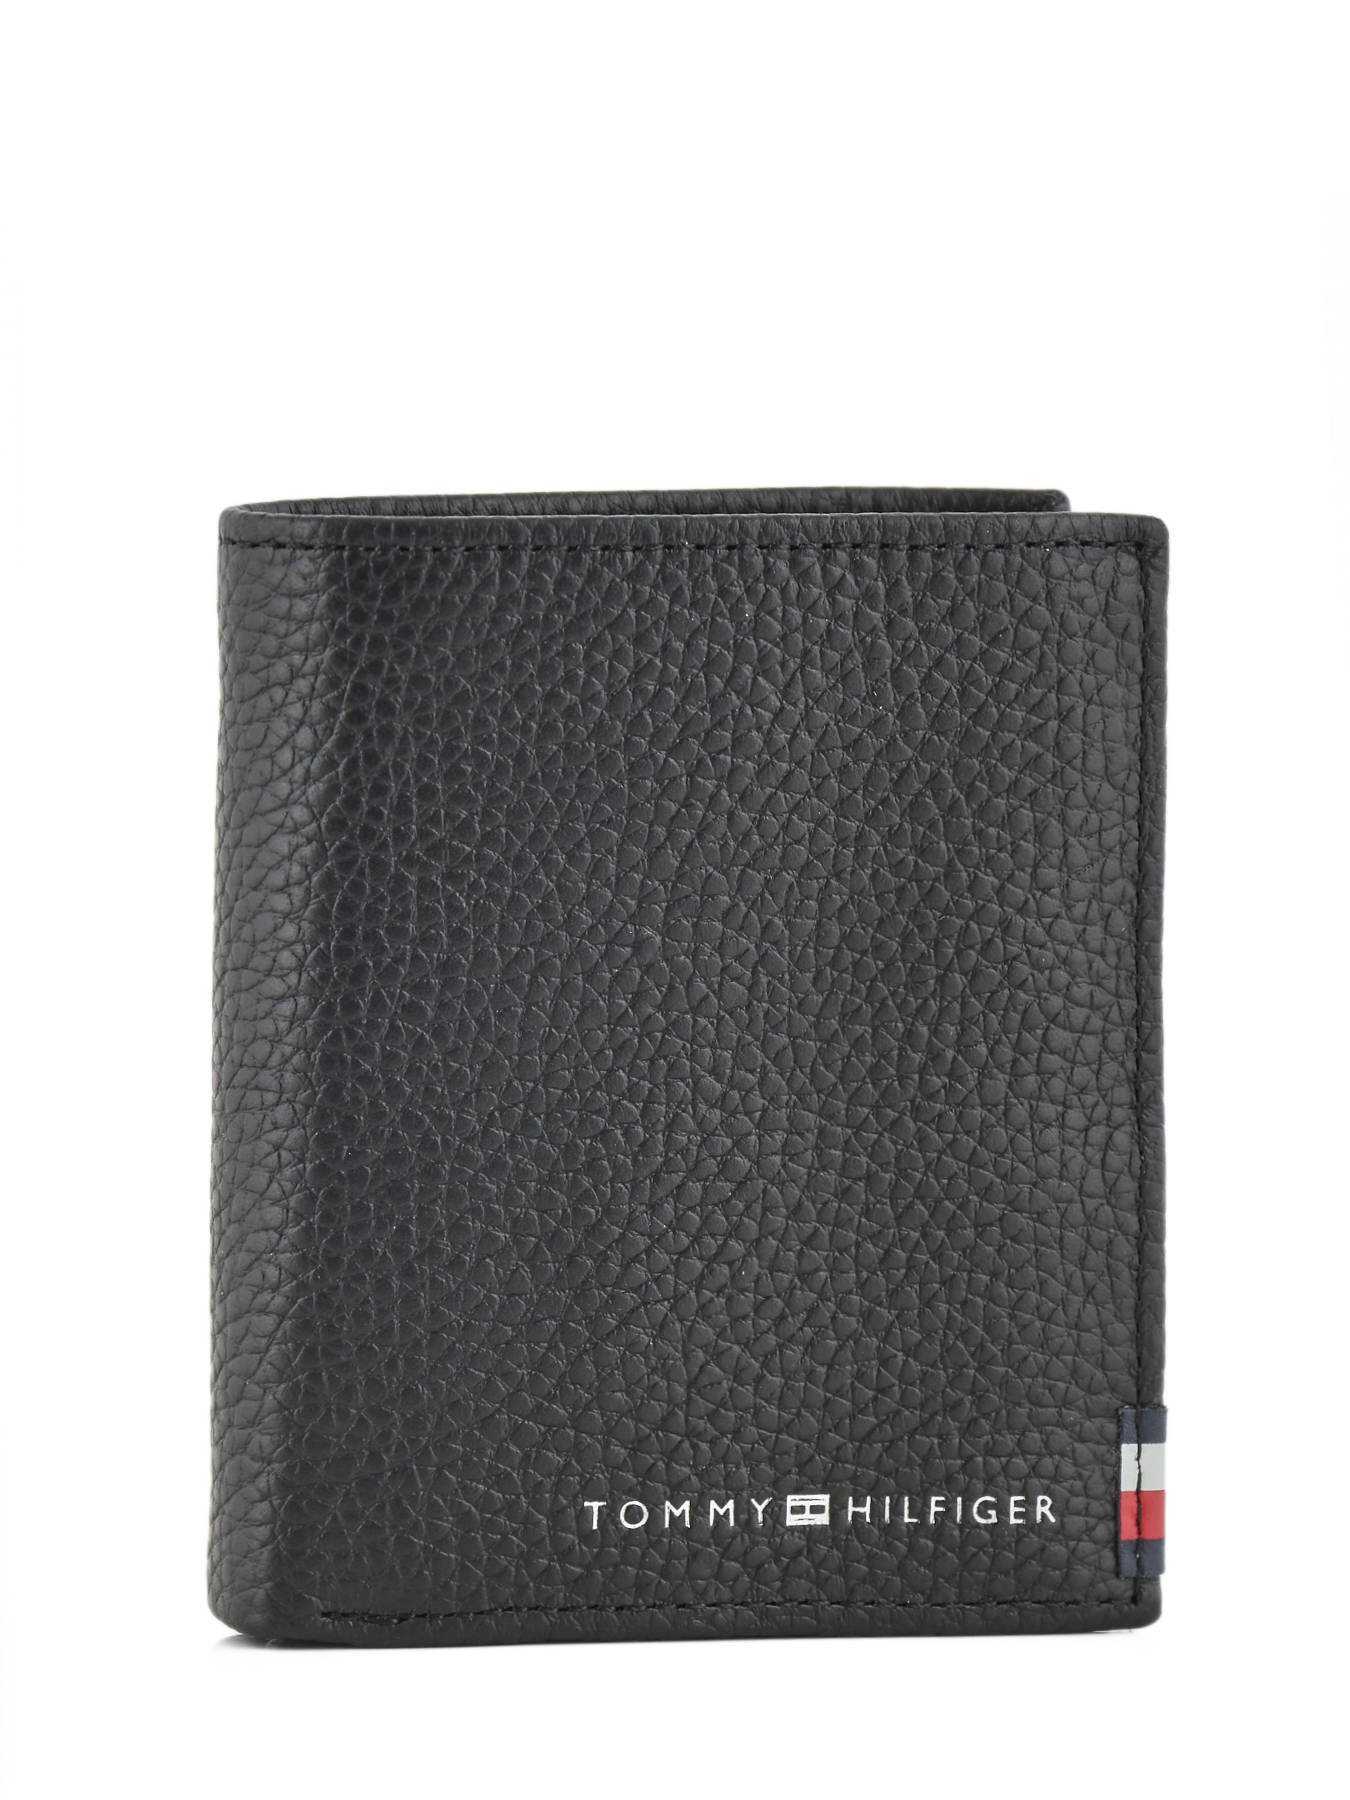 ... Wallet Leather Tommy hilfiger Black soft leahter AM03189 ...